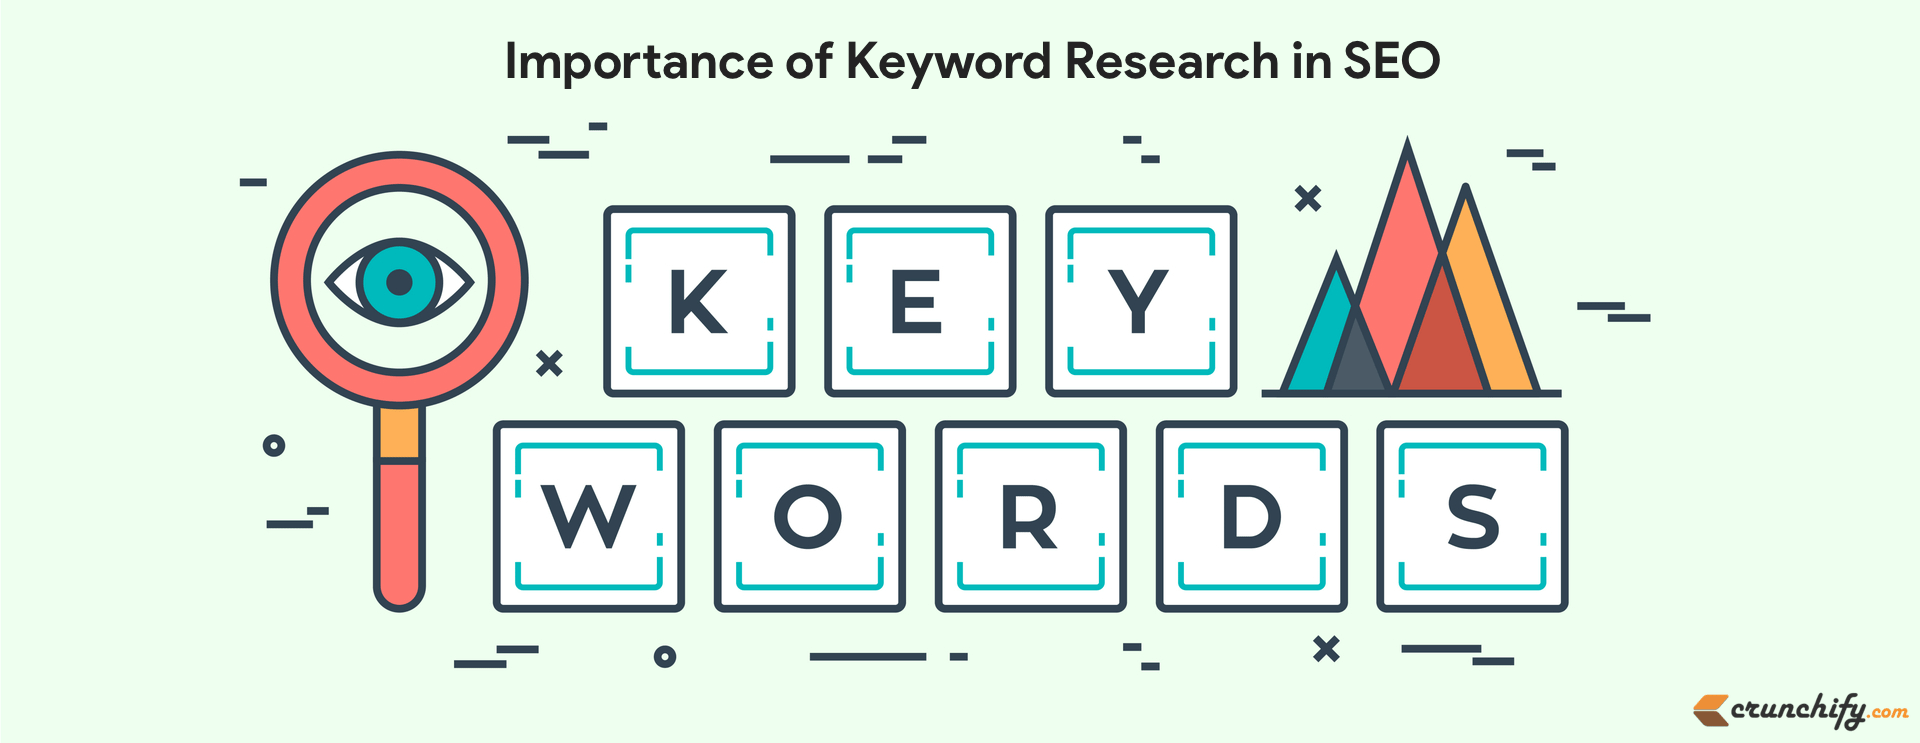 SEO Keyword Research – What is Important for Success